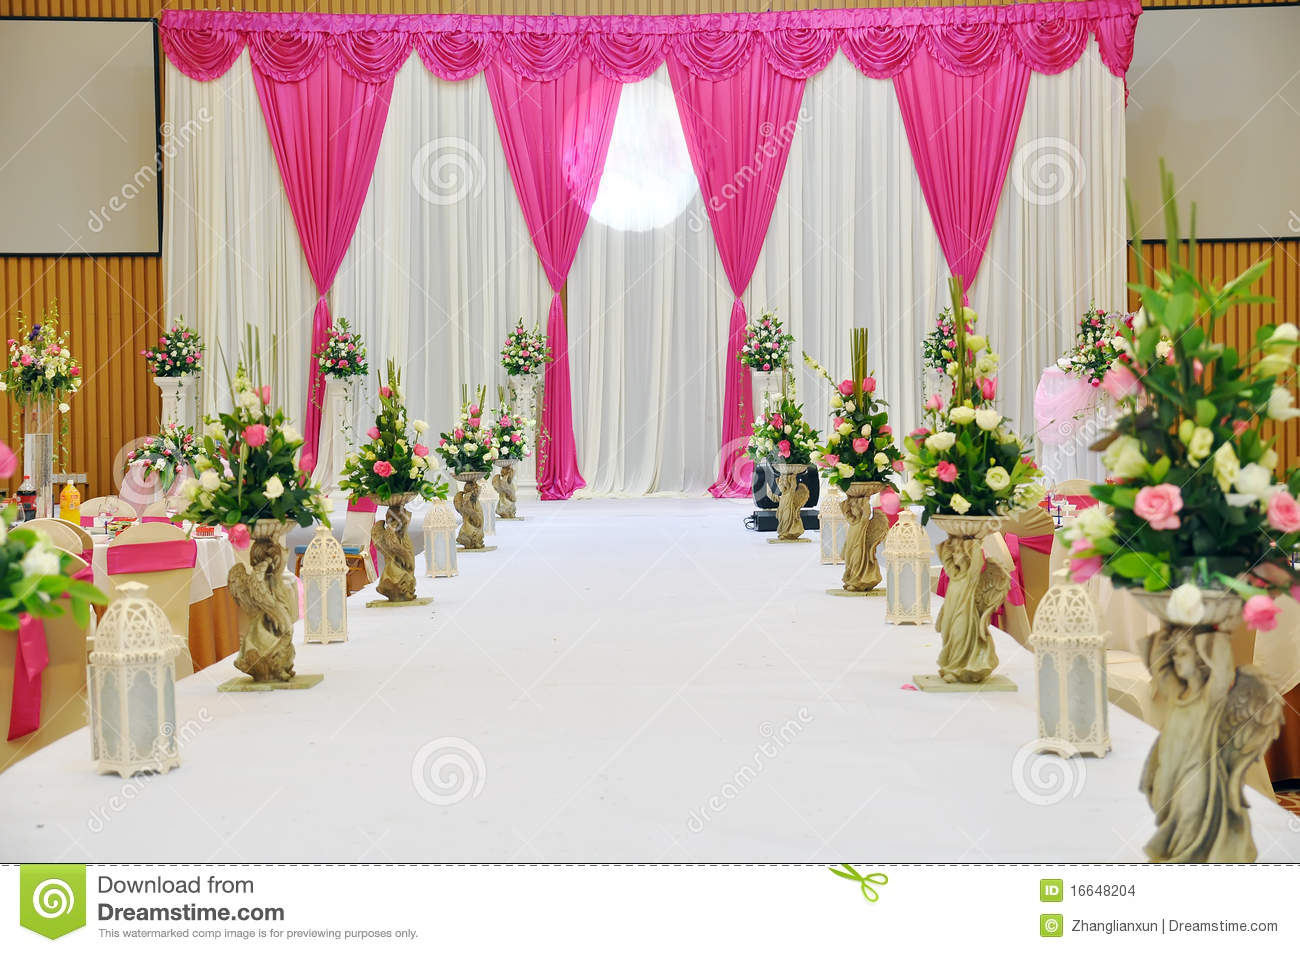 Decoration marriage en image le